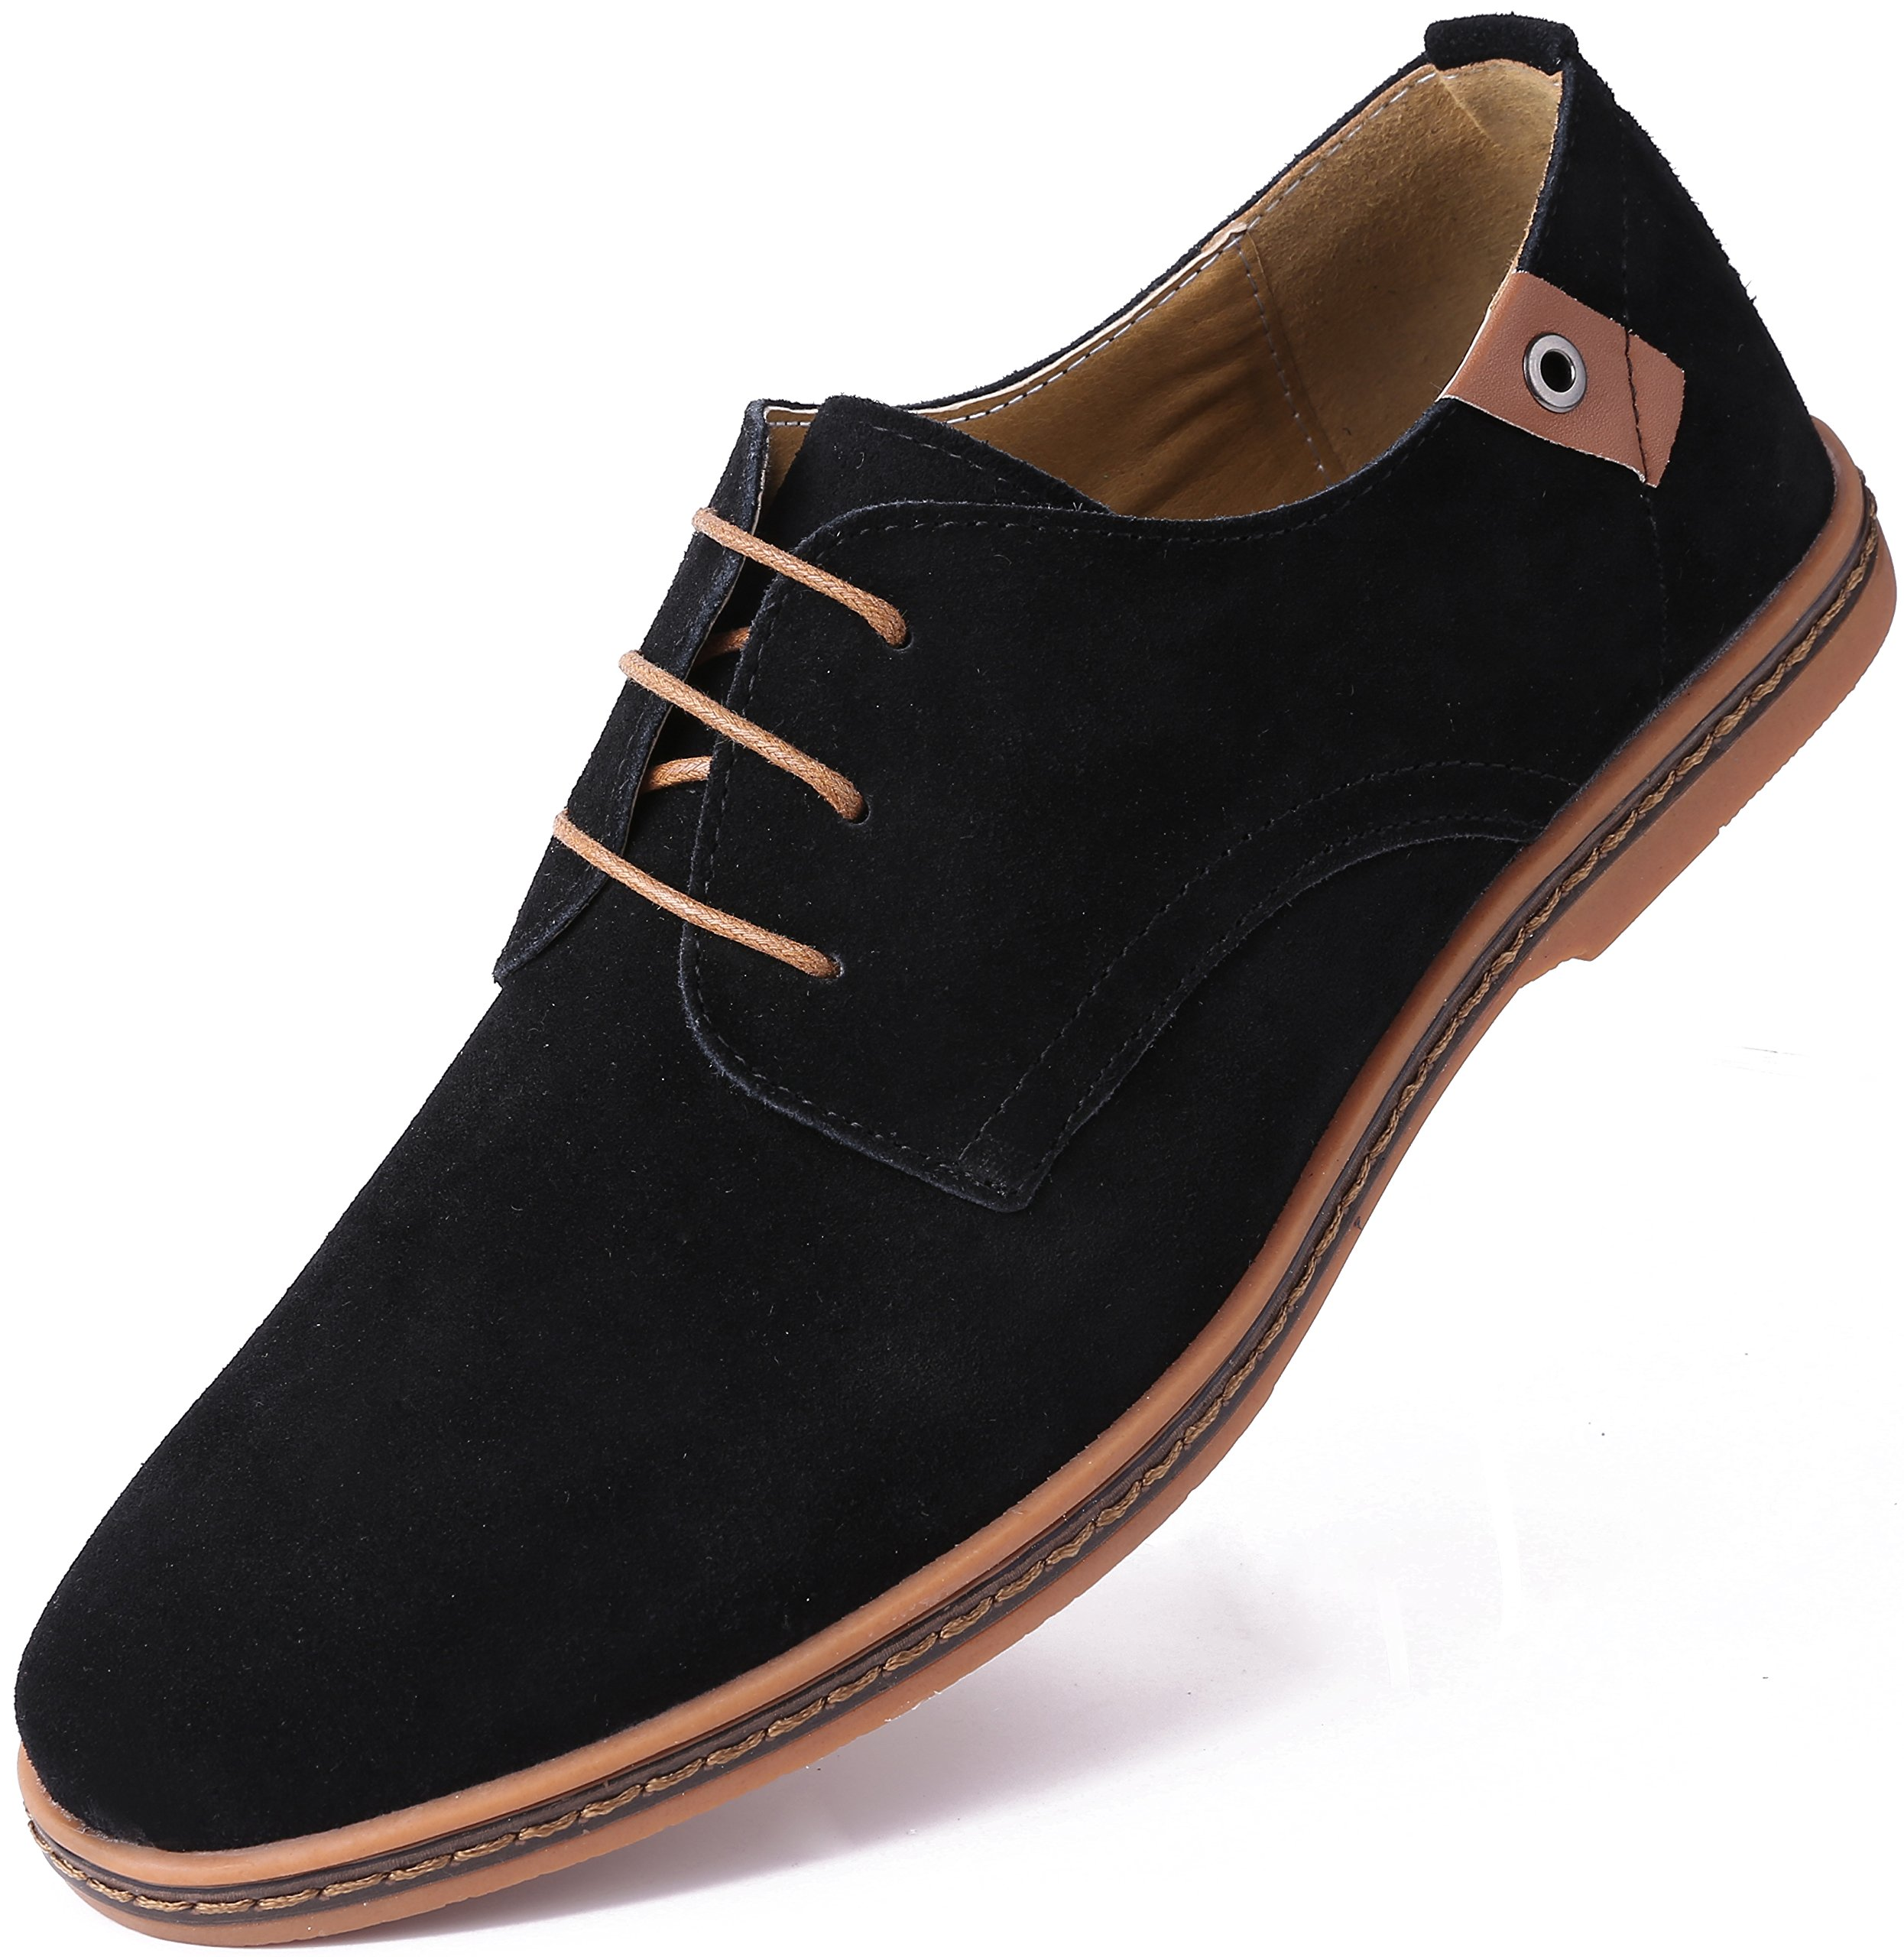 Marino Suede Oxford Dress Shoes for Men - Business Casual Shoes - Black- 11 D(M) US